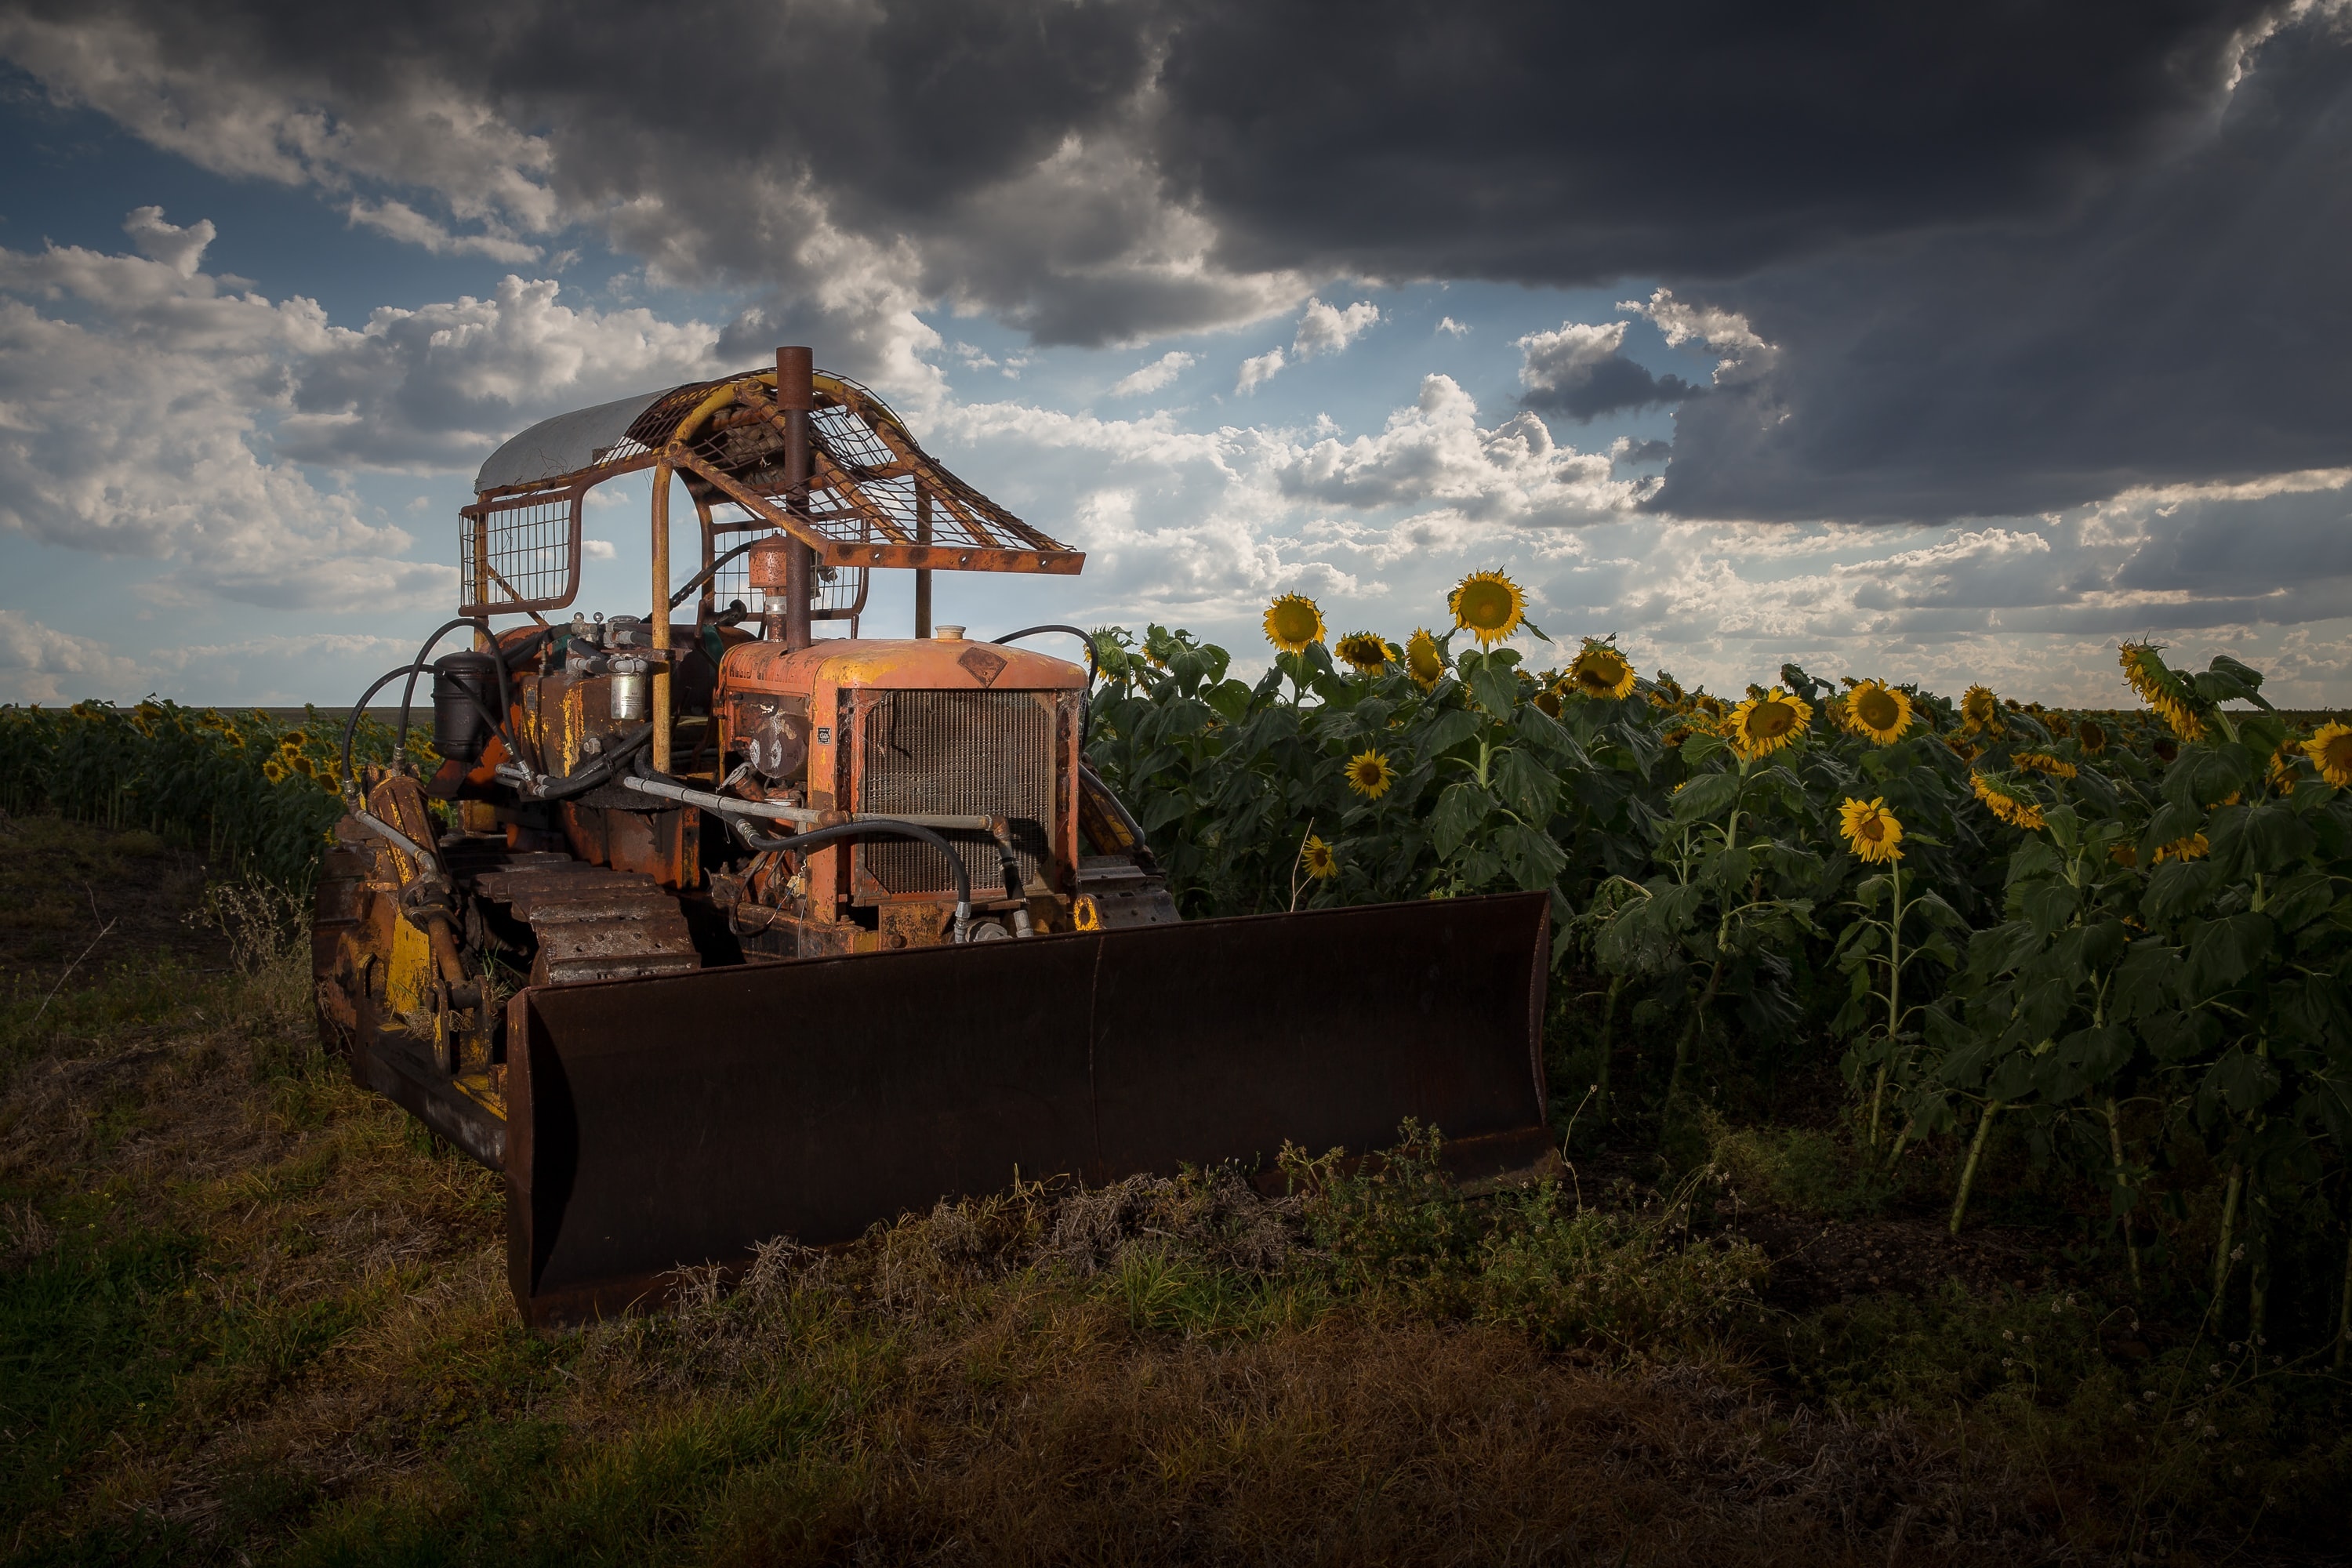 A tractor in a field of sunflowers.